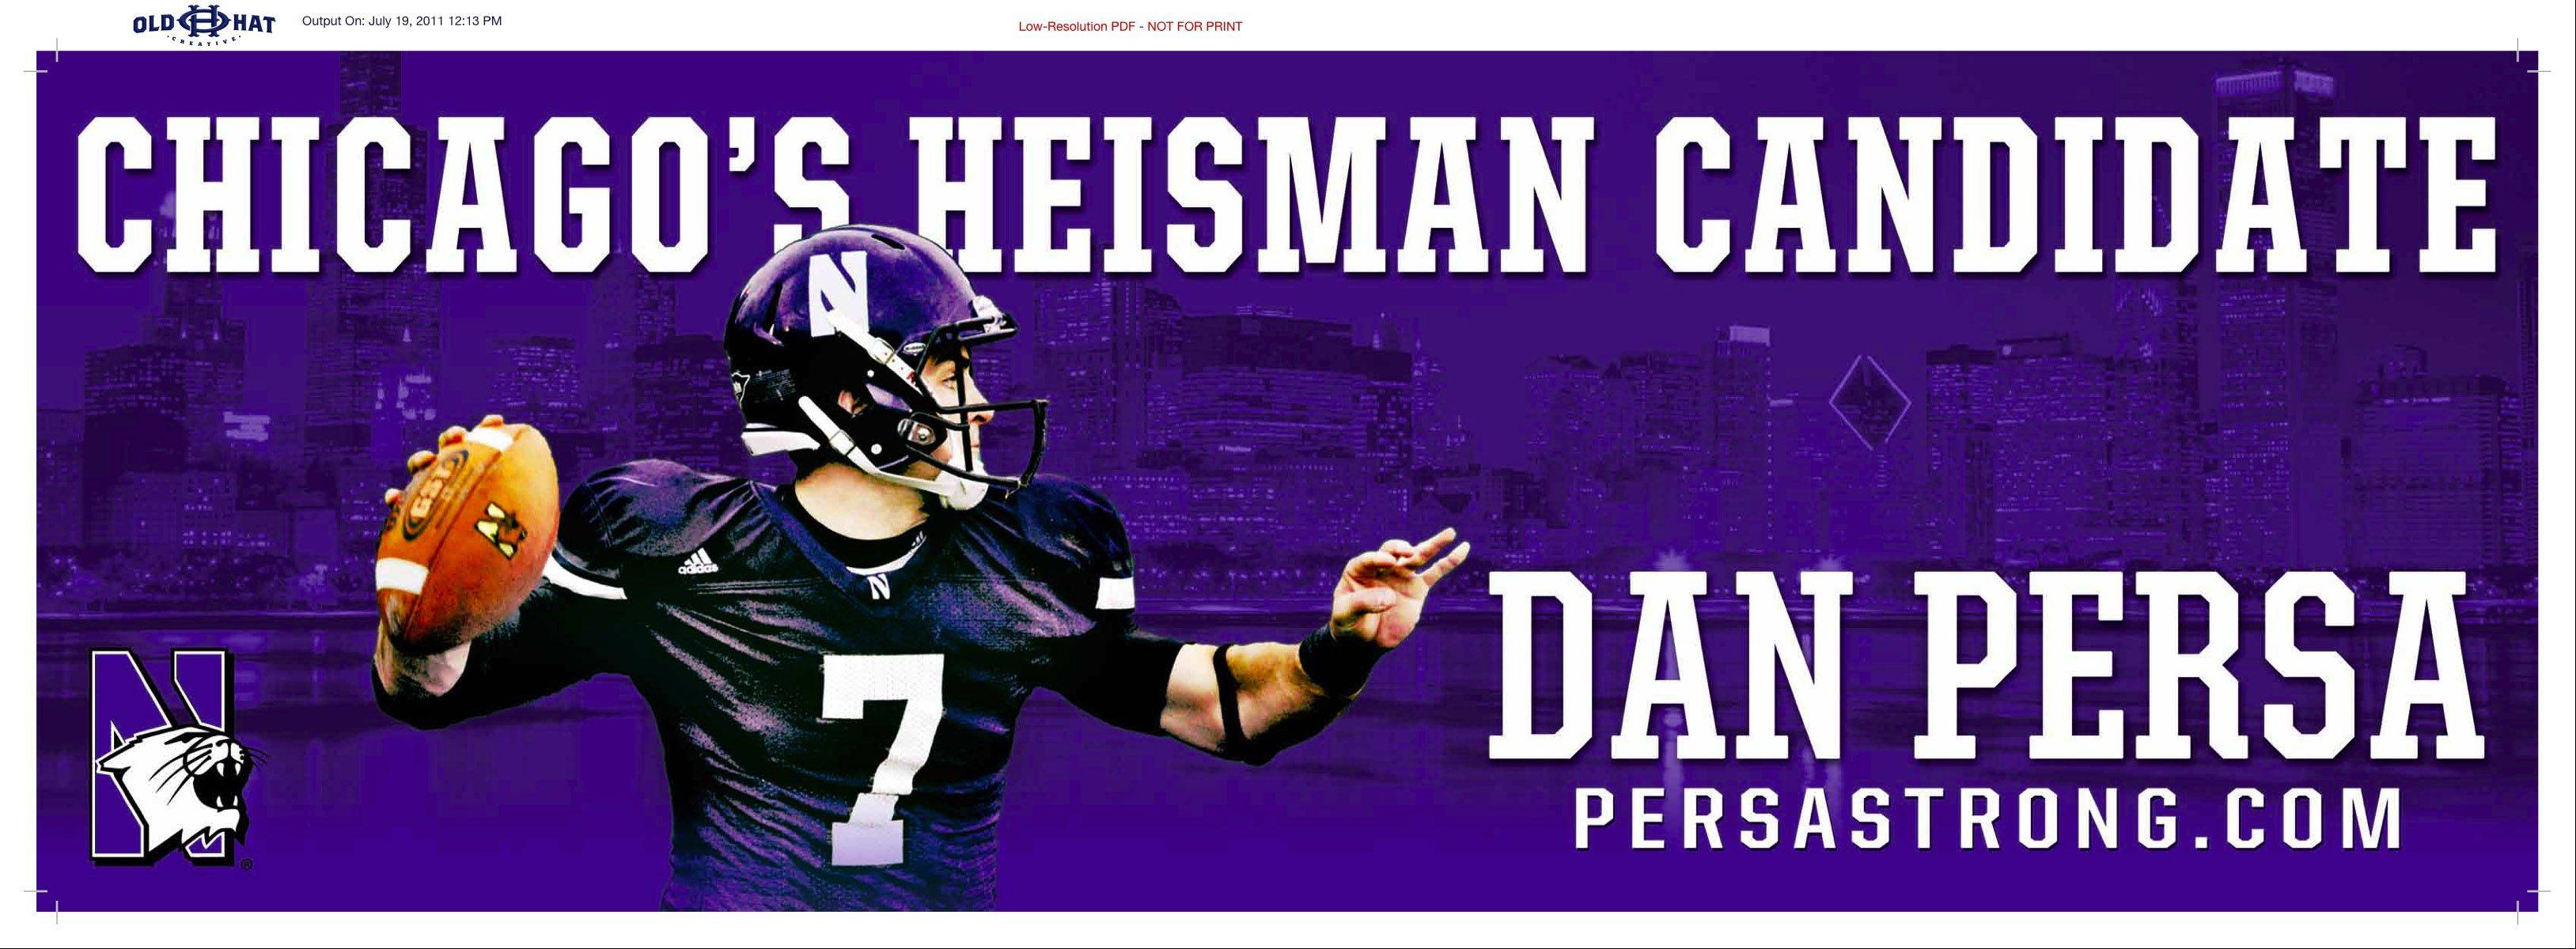 HANDOUT PHOTONorthwestern has started a billboard campaign hyping quarterback Dan Persa as a Heisman contender.